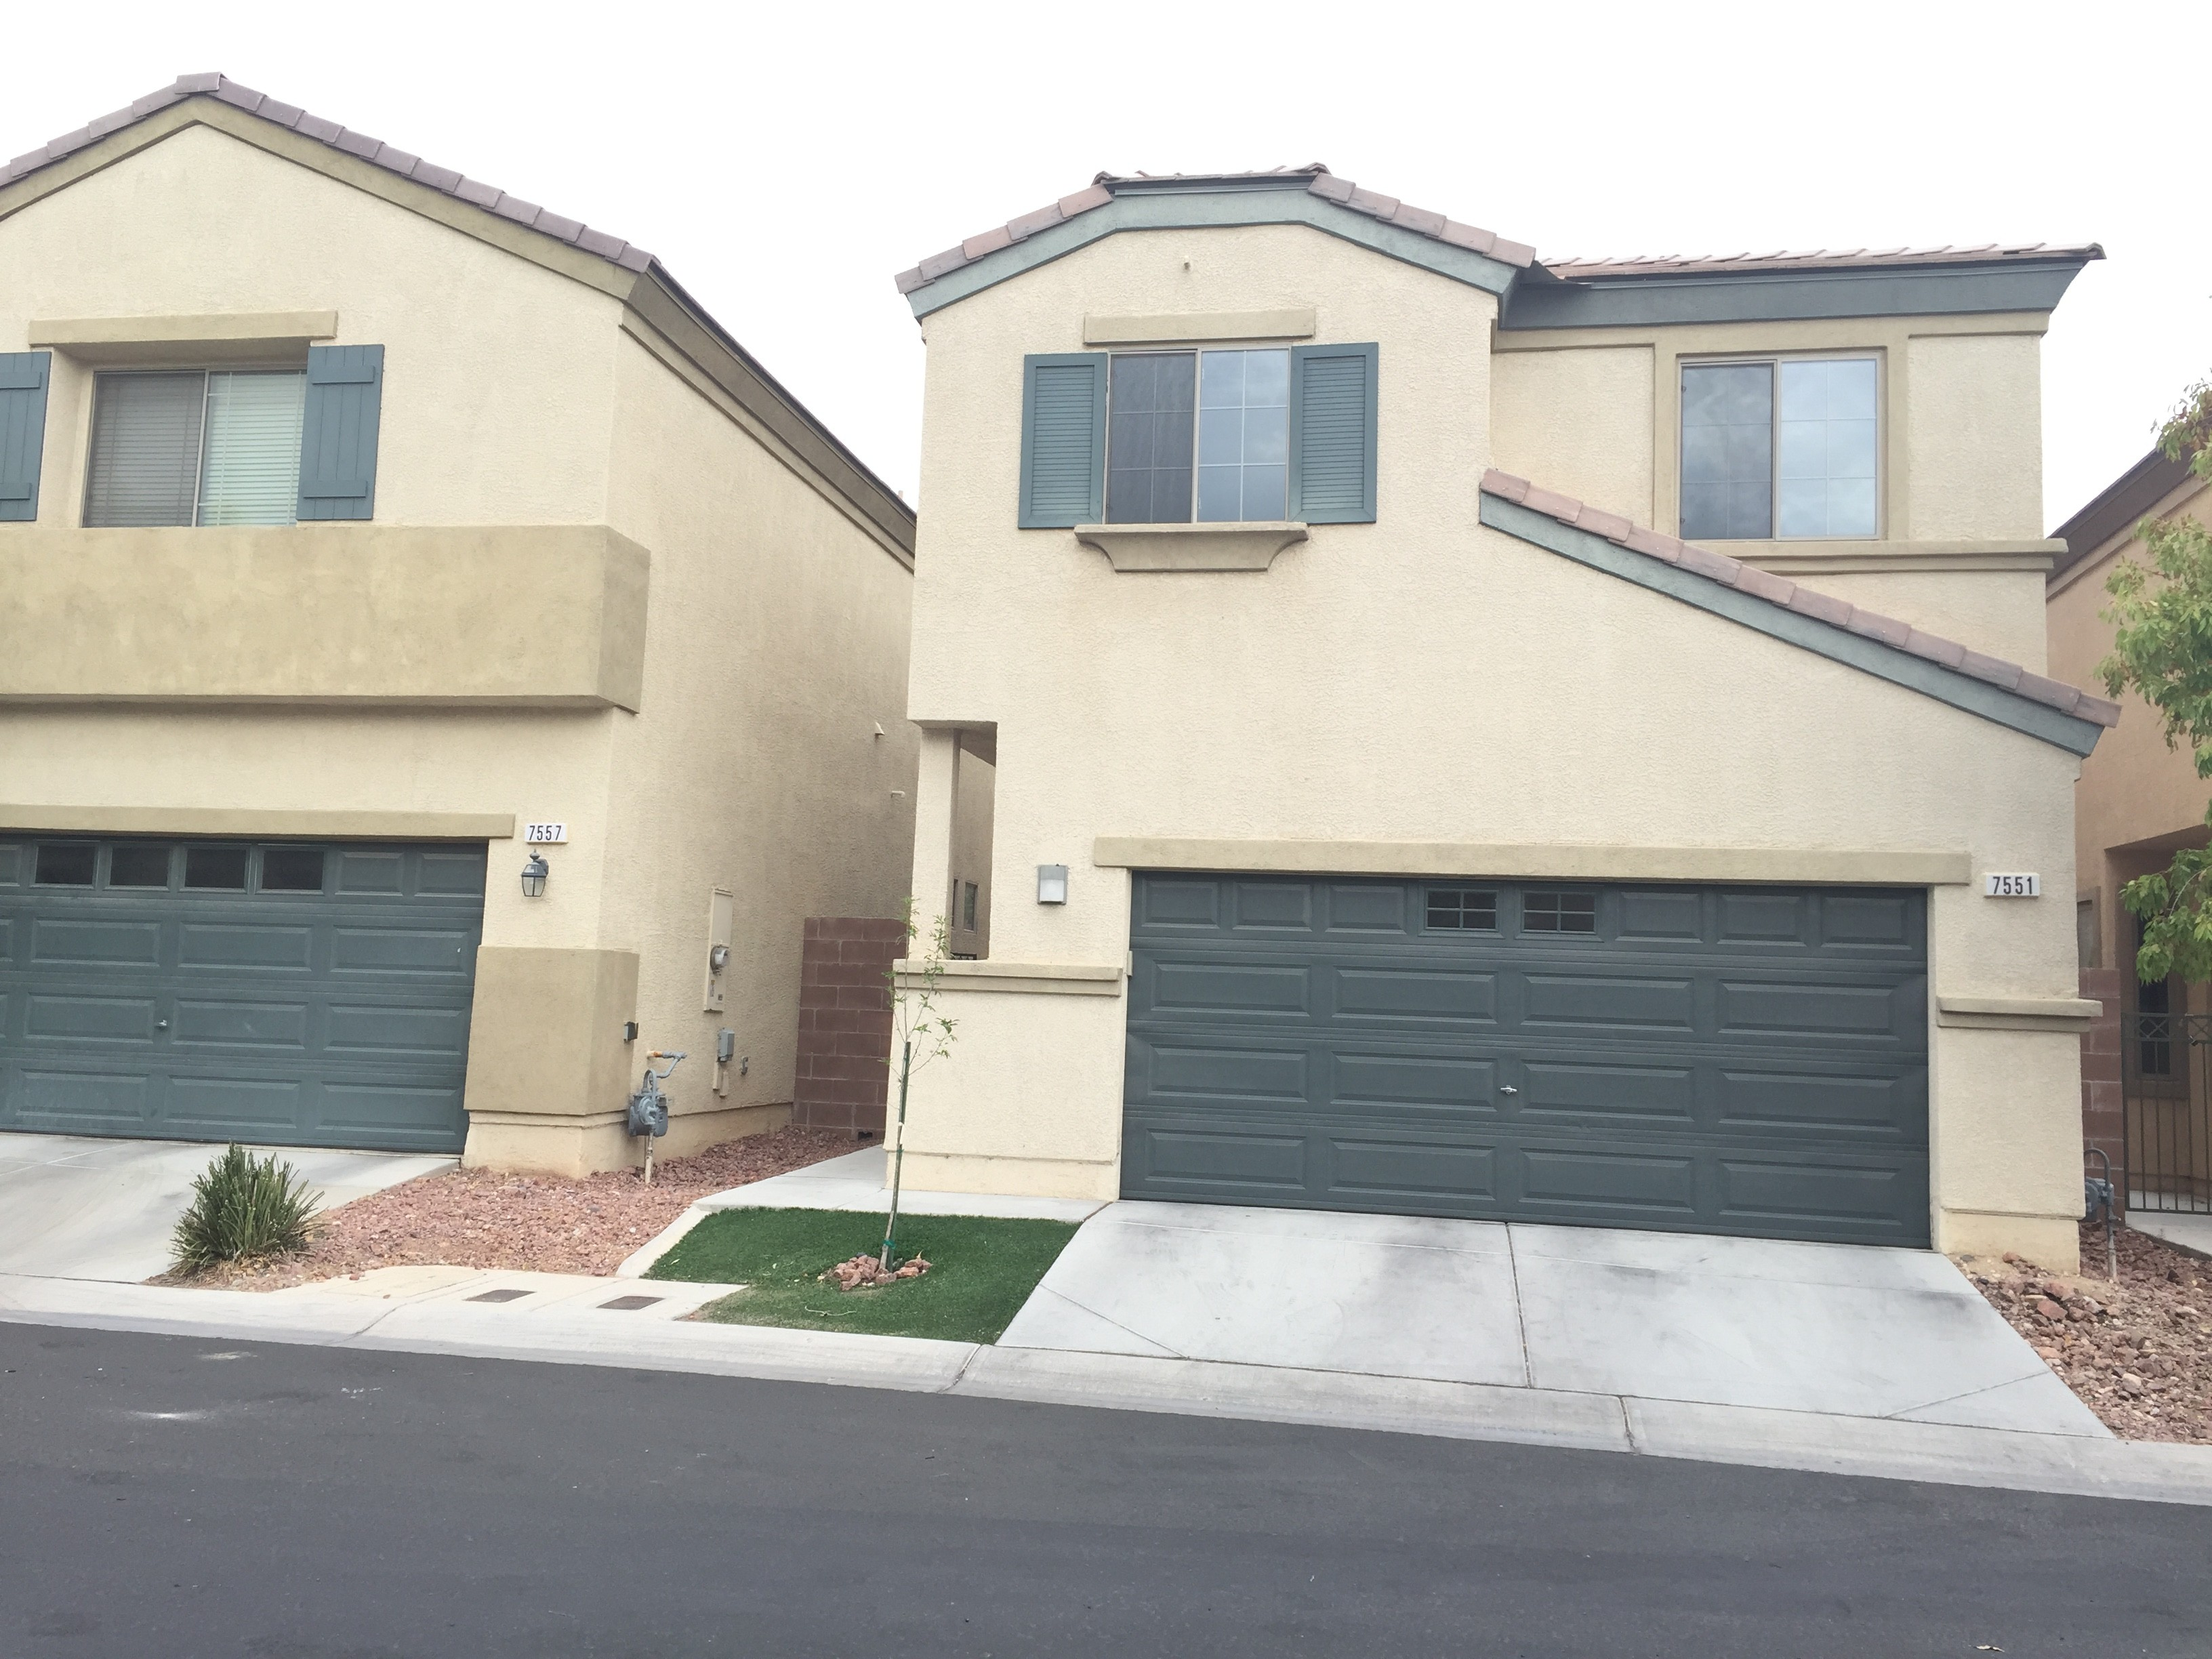 7551 Garden Galley St Las Vegas Nv 89139 3 Bedroom Apartment For Rent For 1 150 Month Zumper